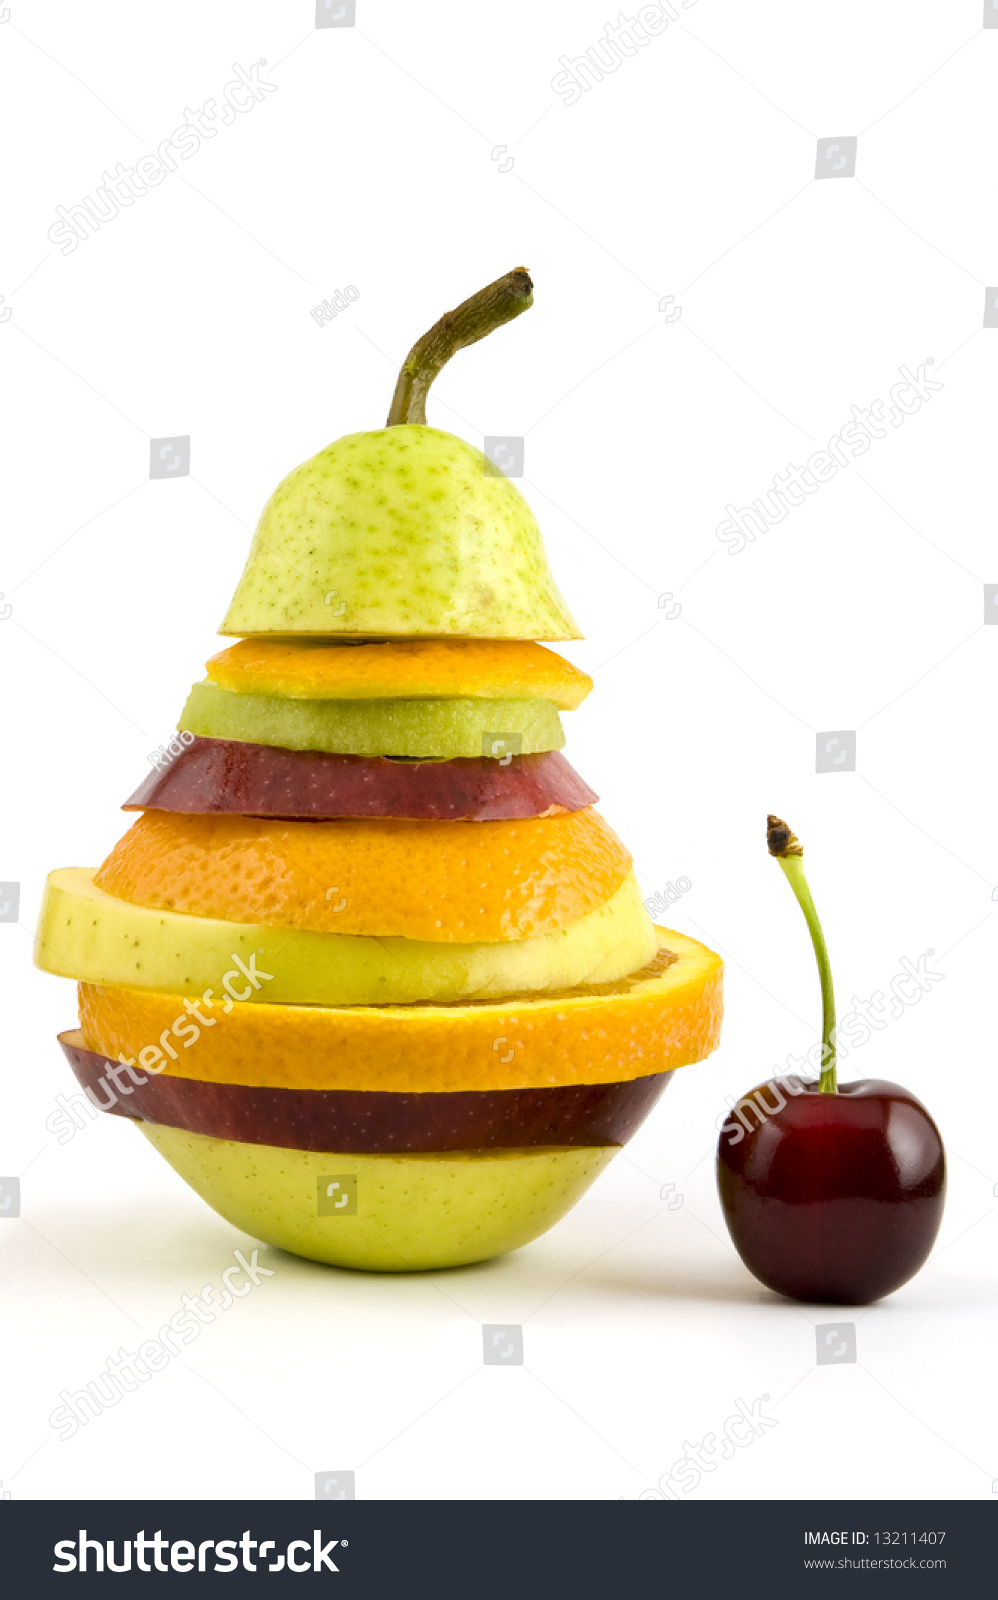 Very Special Fruit Salad Made With Some Slices Of